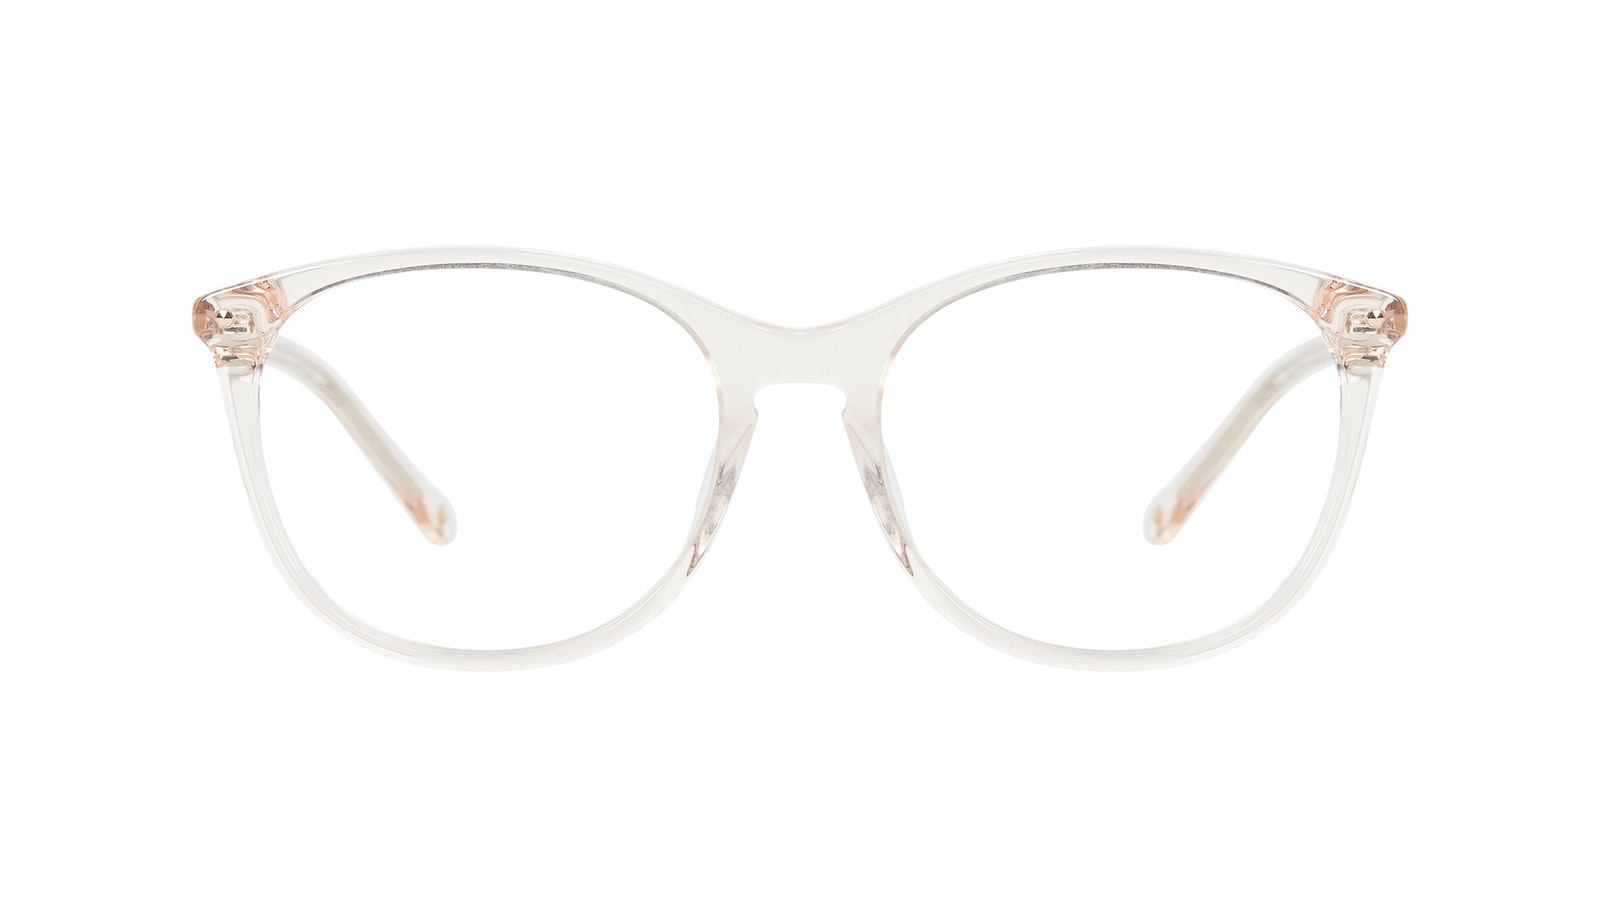 Affordable Fashion Glasses Rectangle Square Round Eyeglasses Women Nadine Prosecco